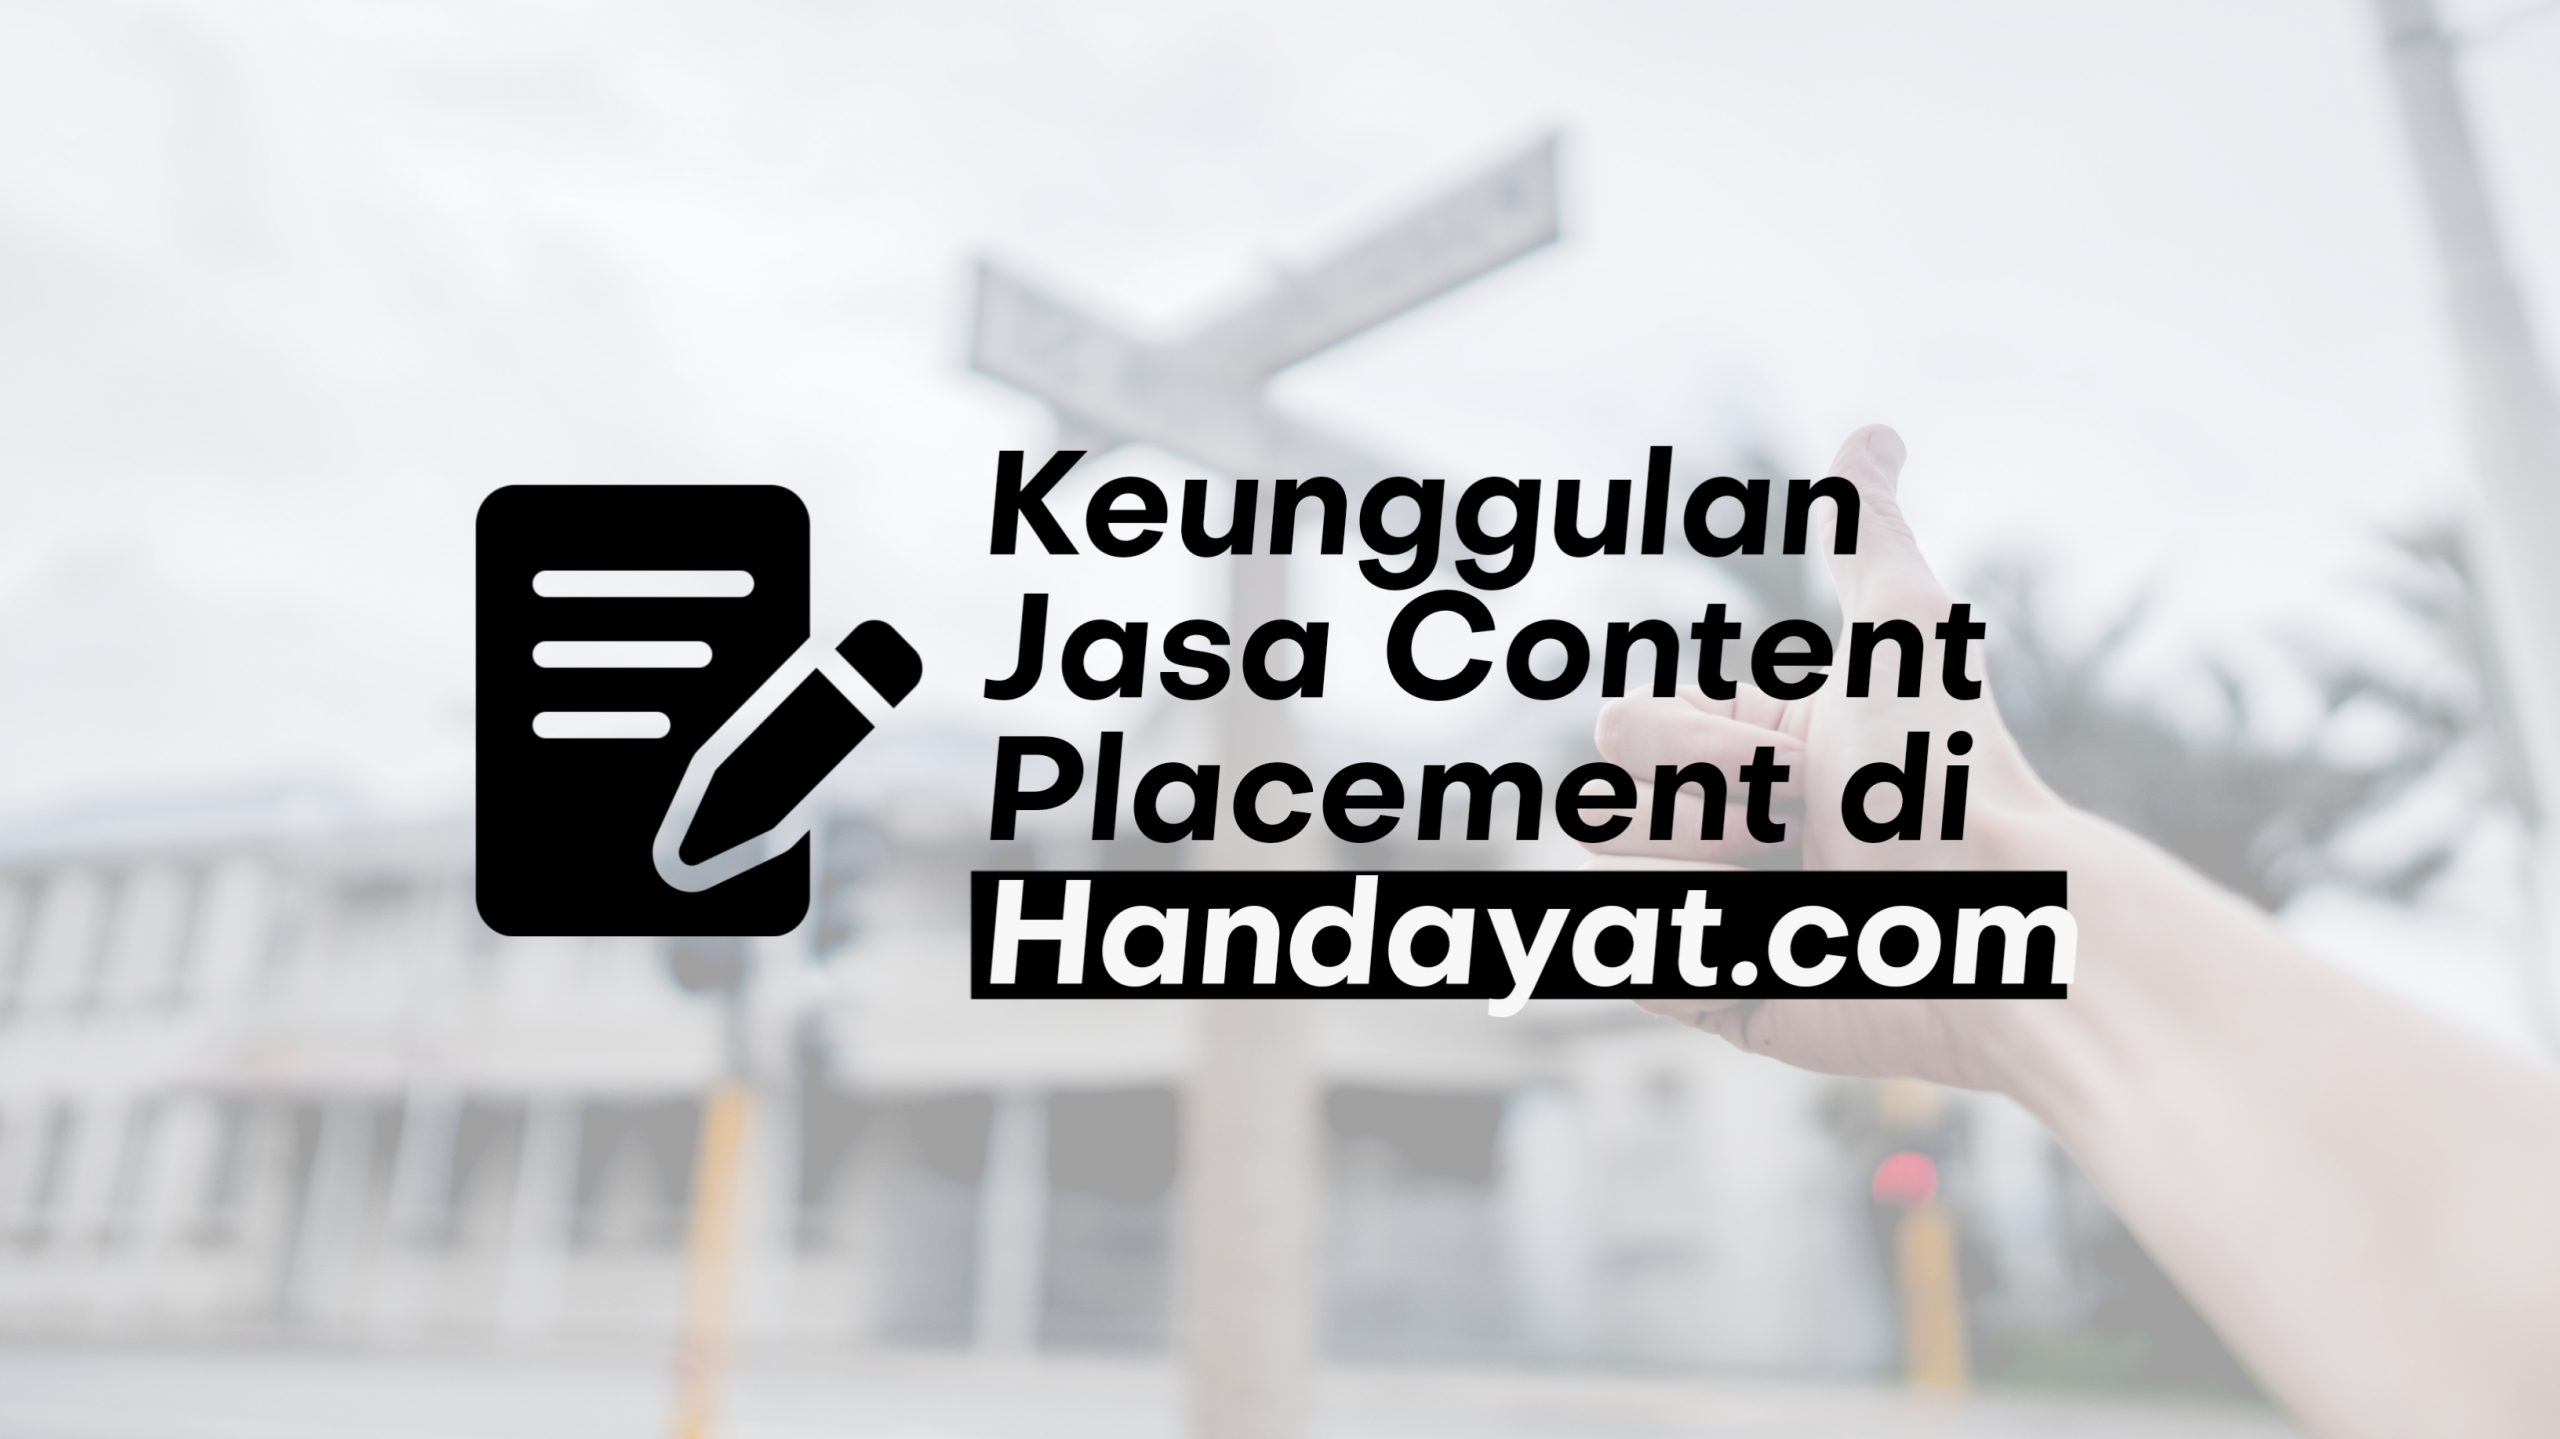 Keunggulan Jasa Content Placement Indonesia